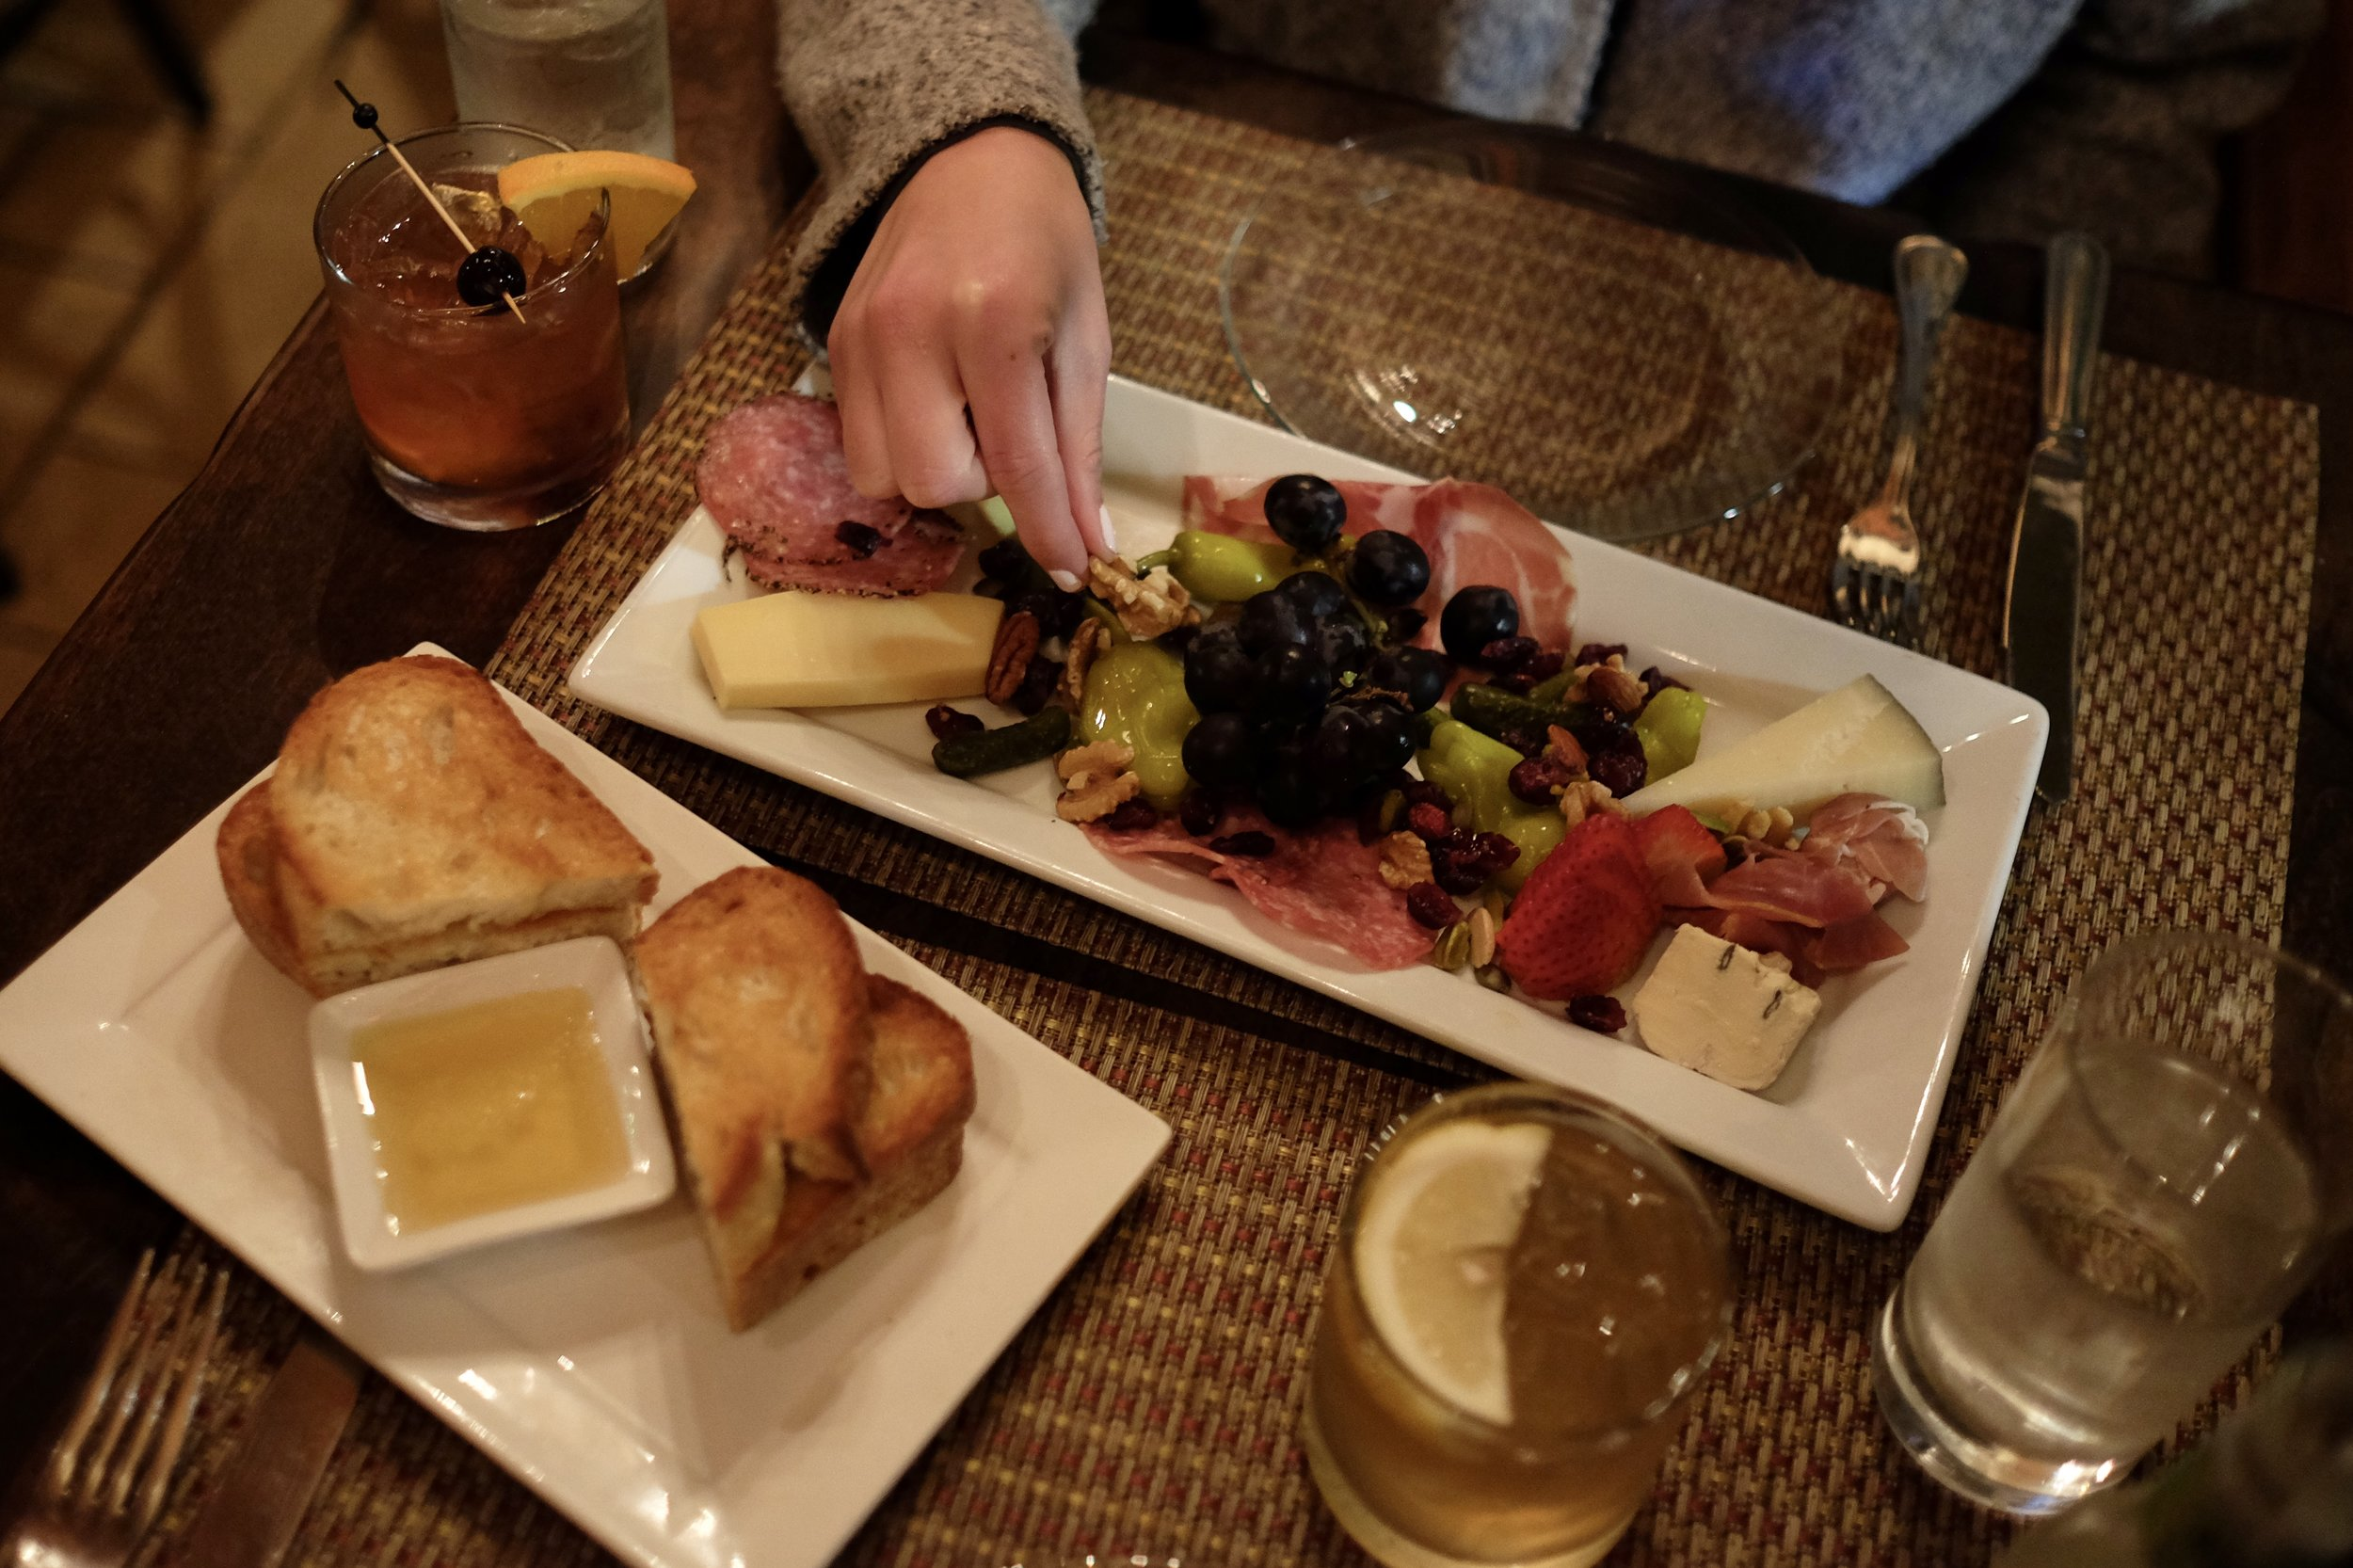 Yummy appetizers at Grasing's before dinner